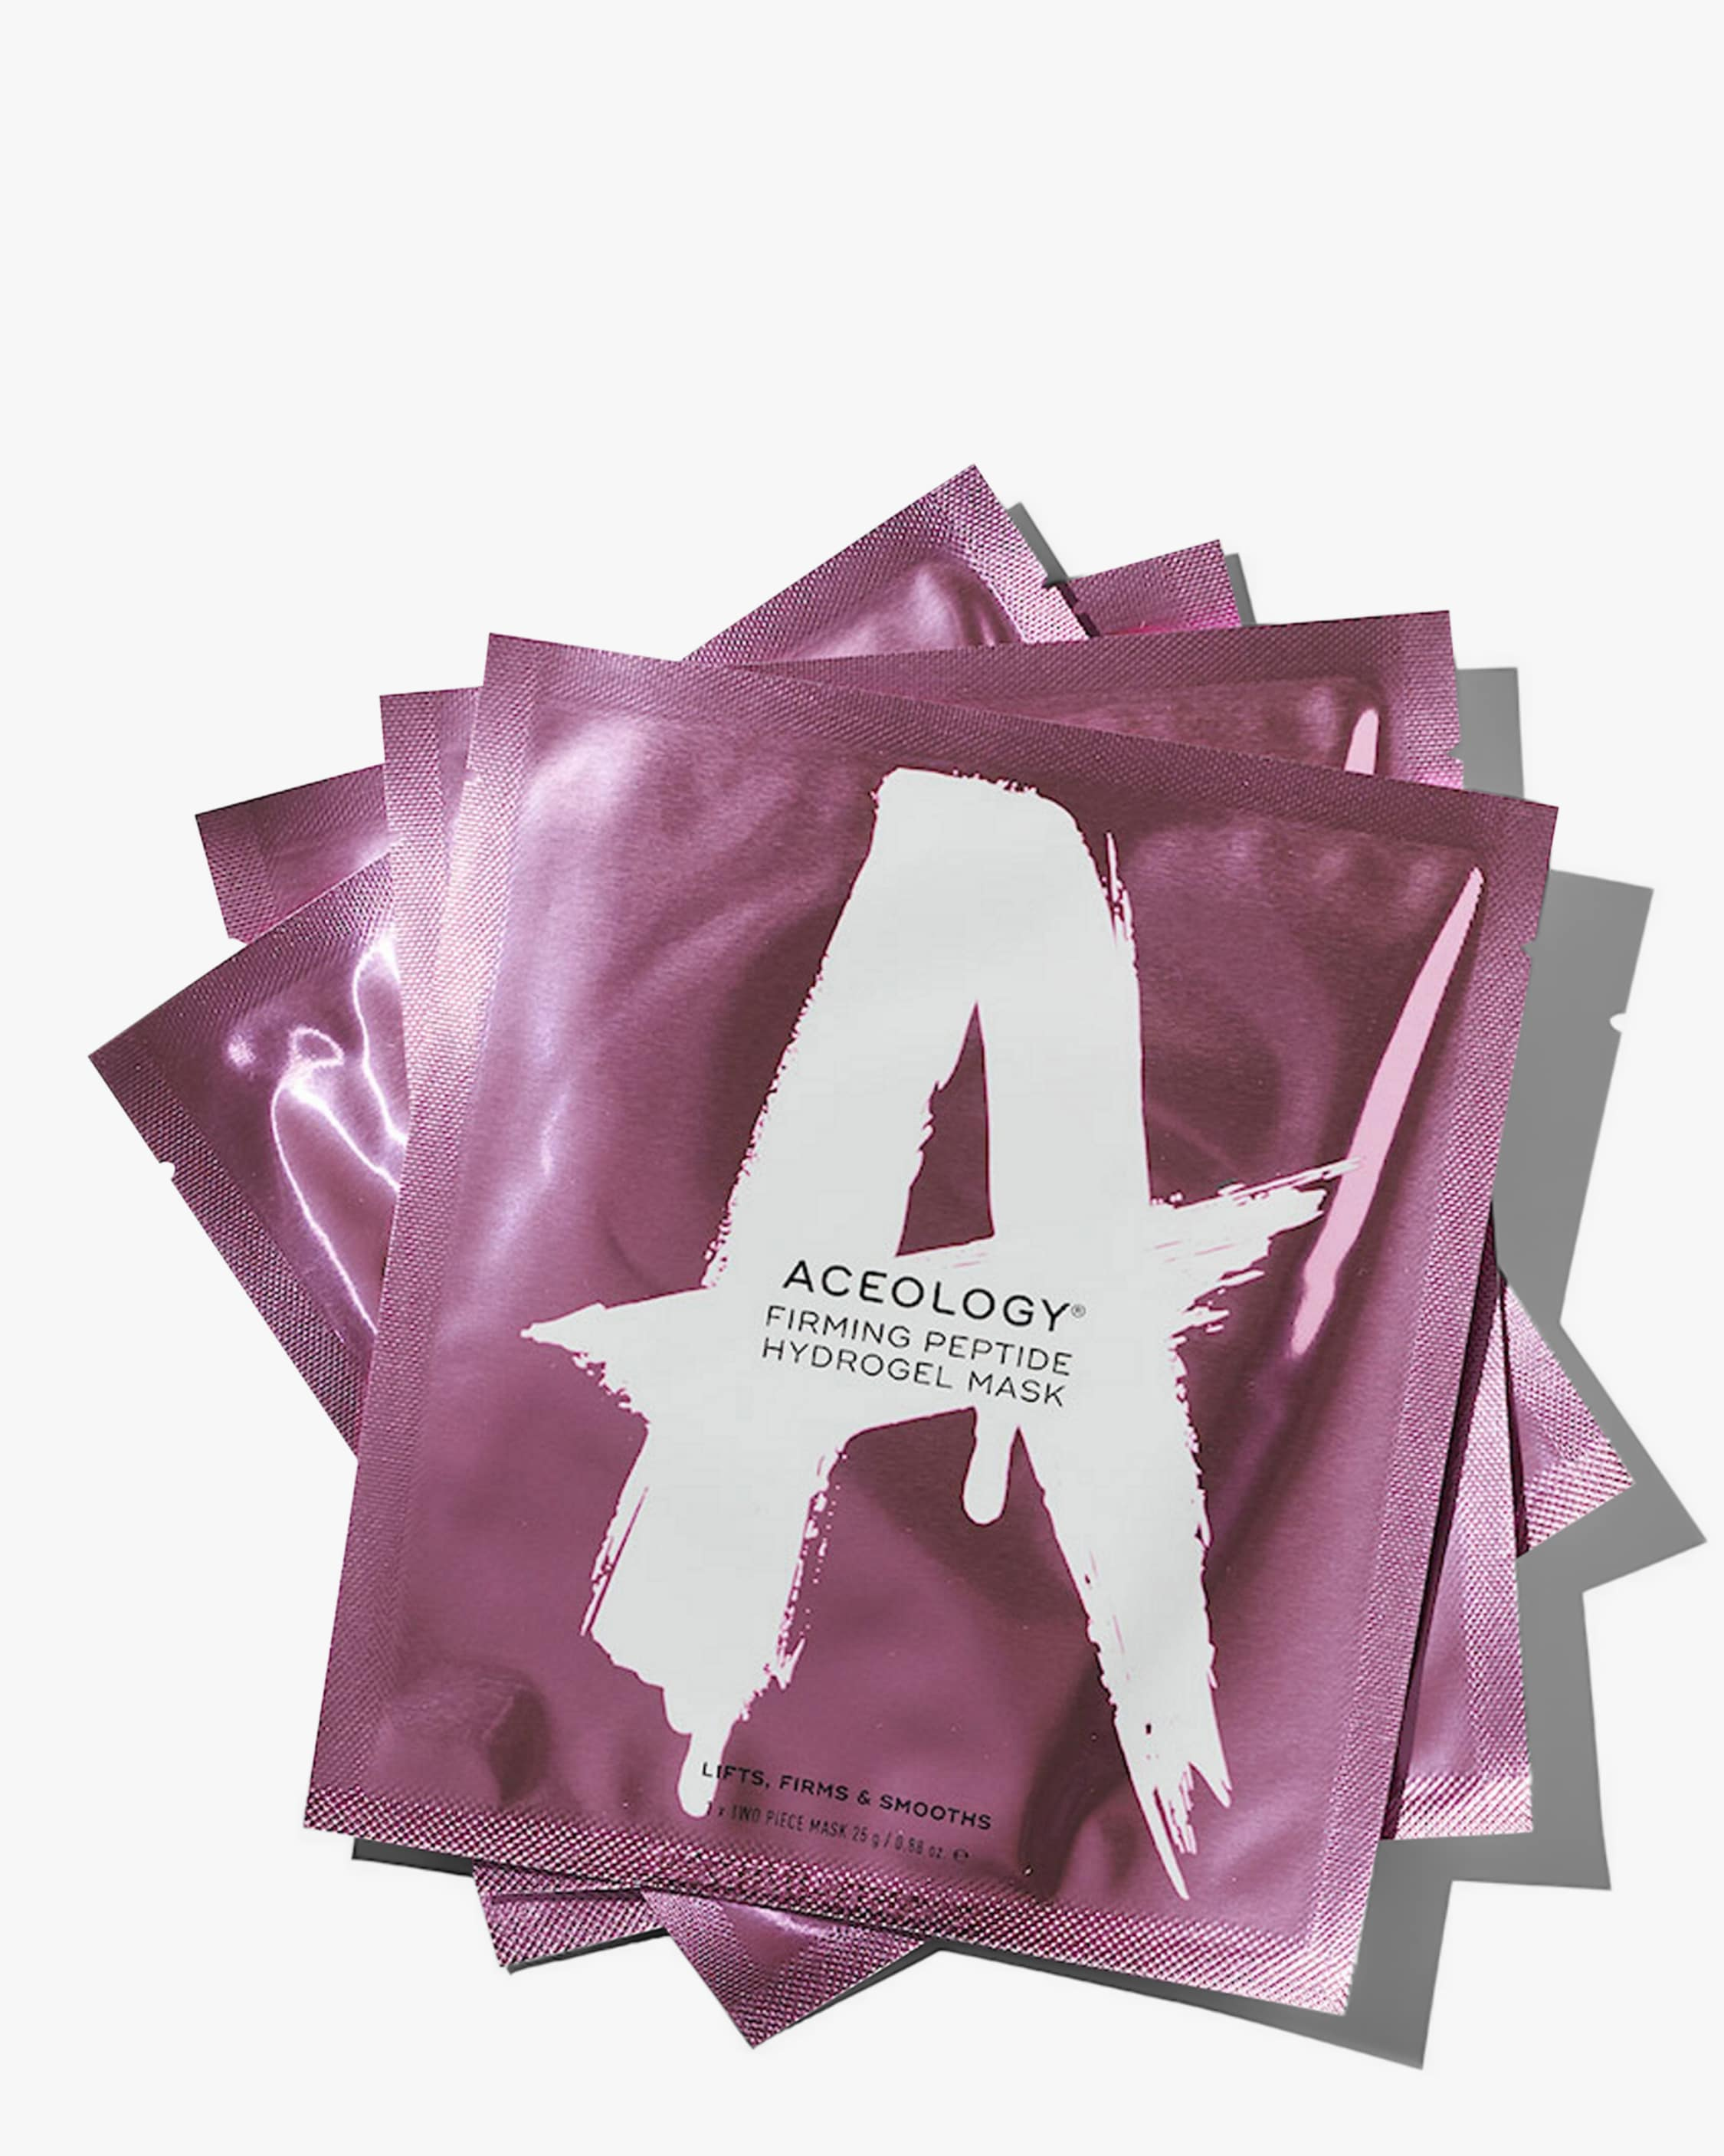 Aceology Firming Peptide Hydrogel Mask 4 pack 2